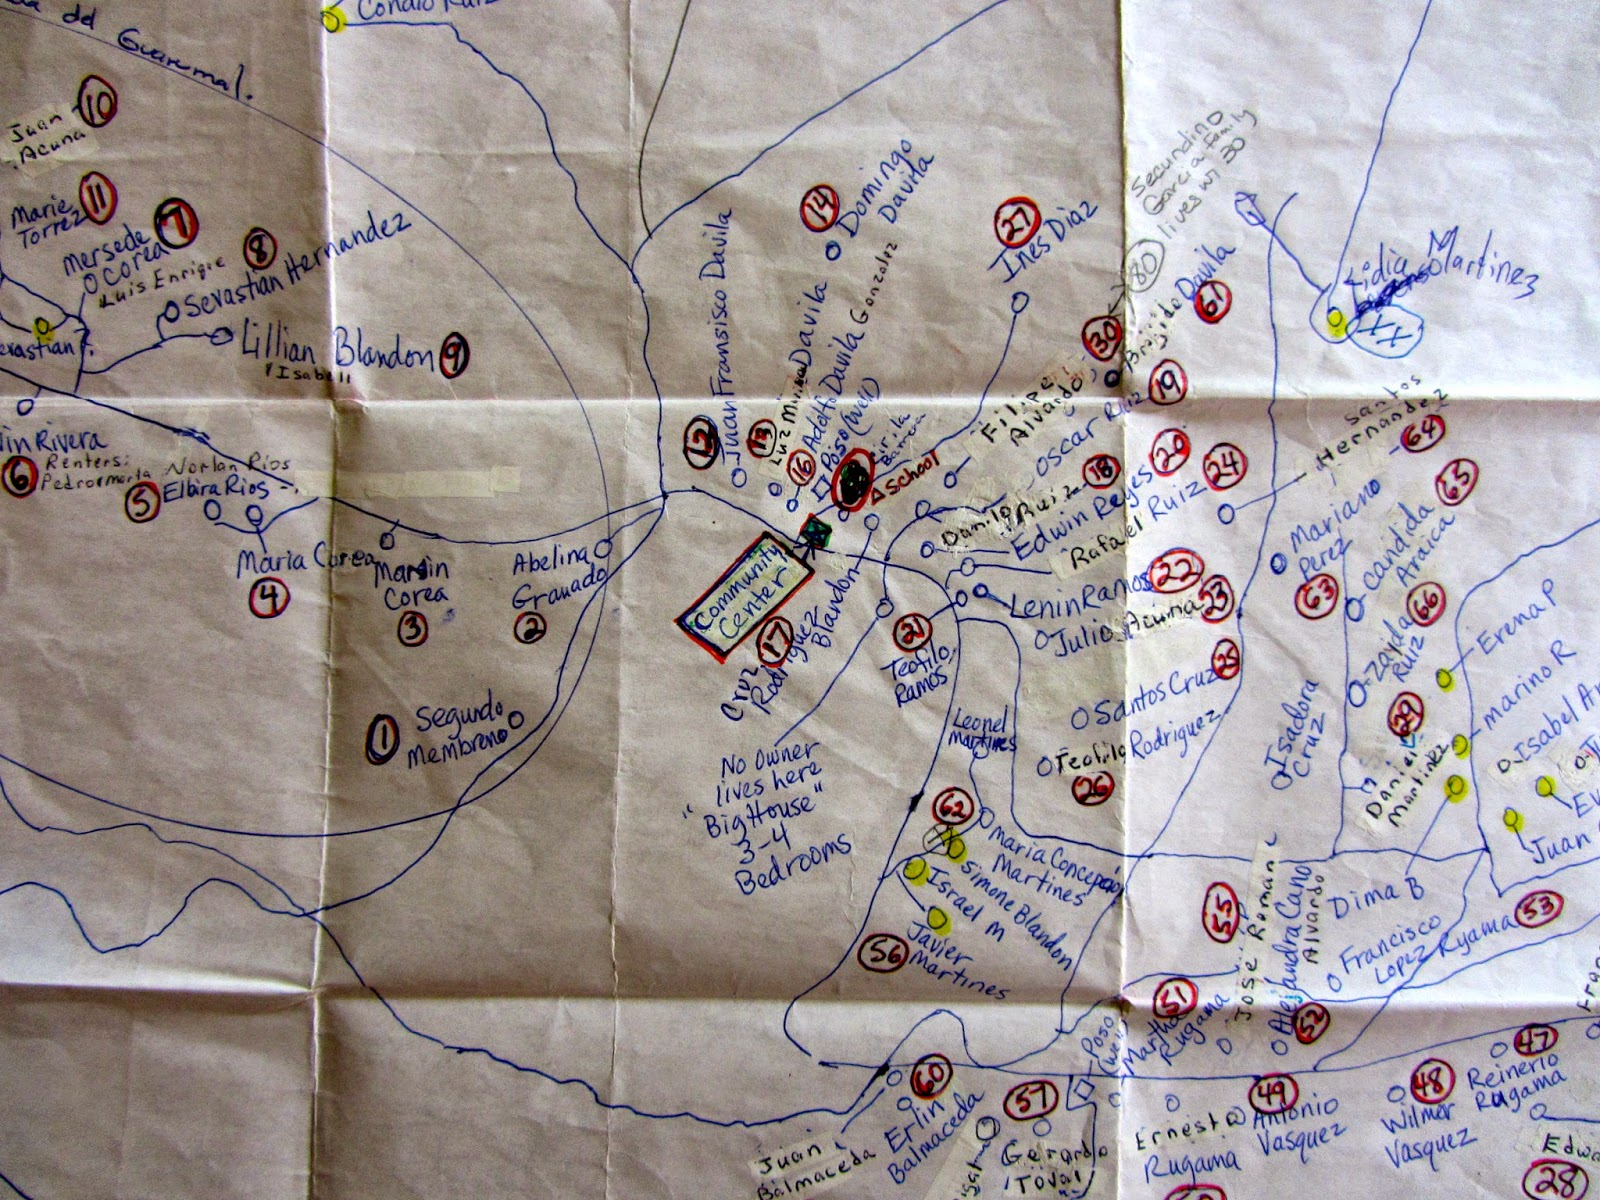 the wonderful map of los pinos we used during our visit was put together during past wcc visits the new building site 21 homes is just to the left of the